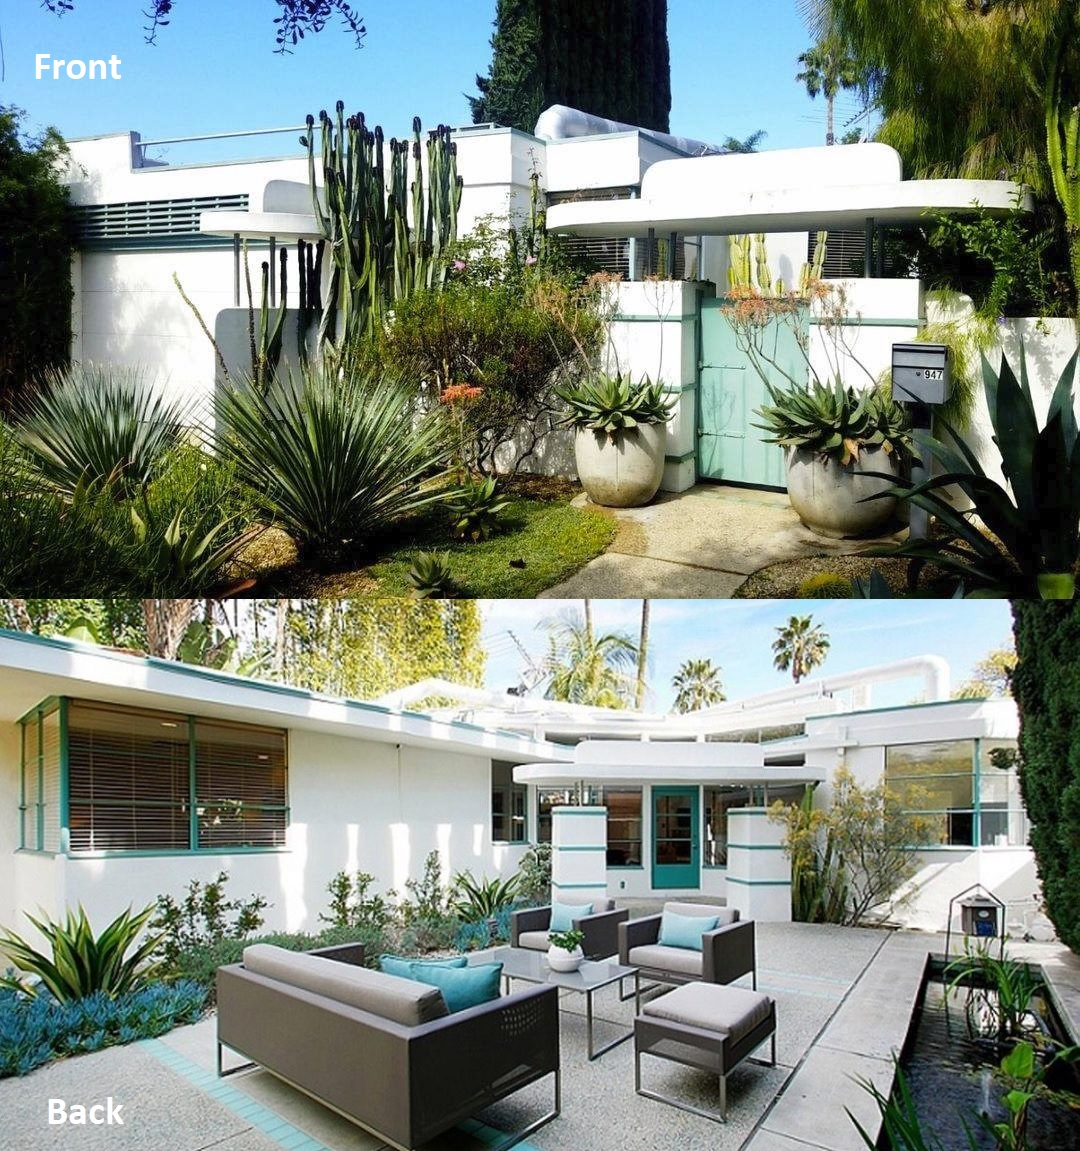 Wallace Beery Rresidence - Front and Back